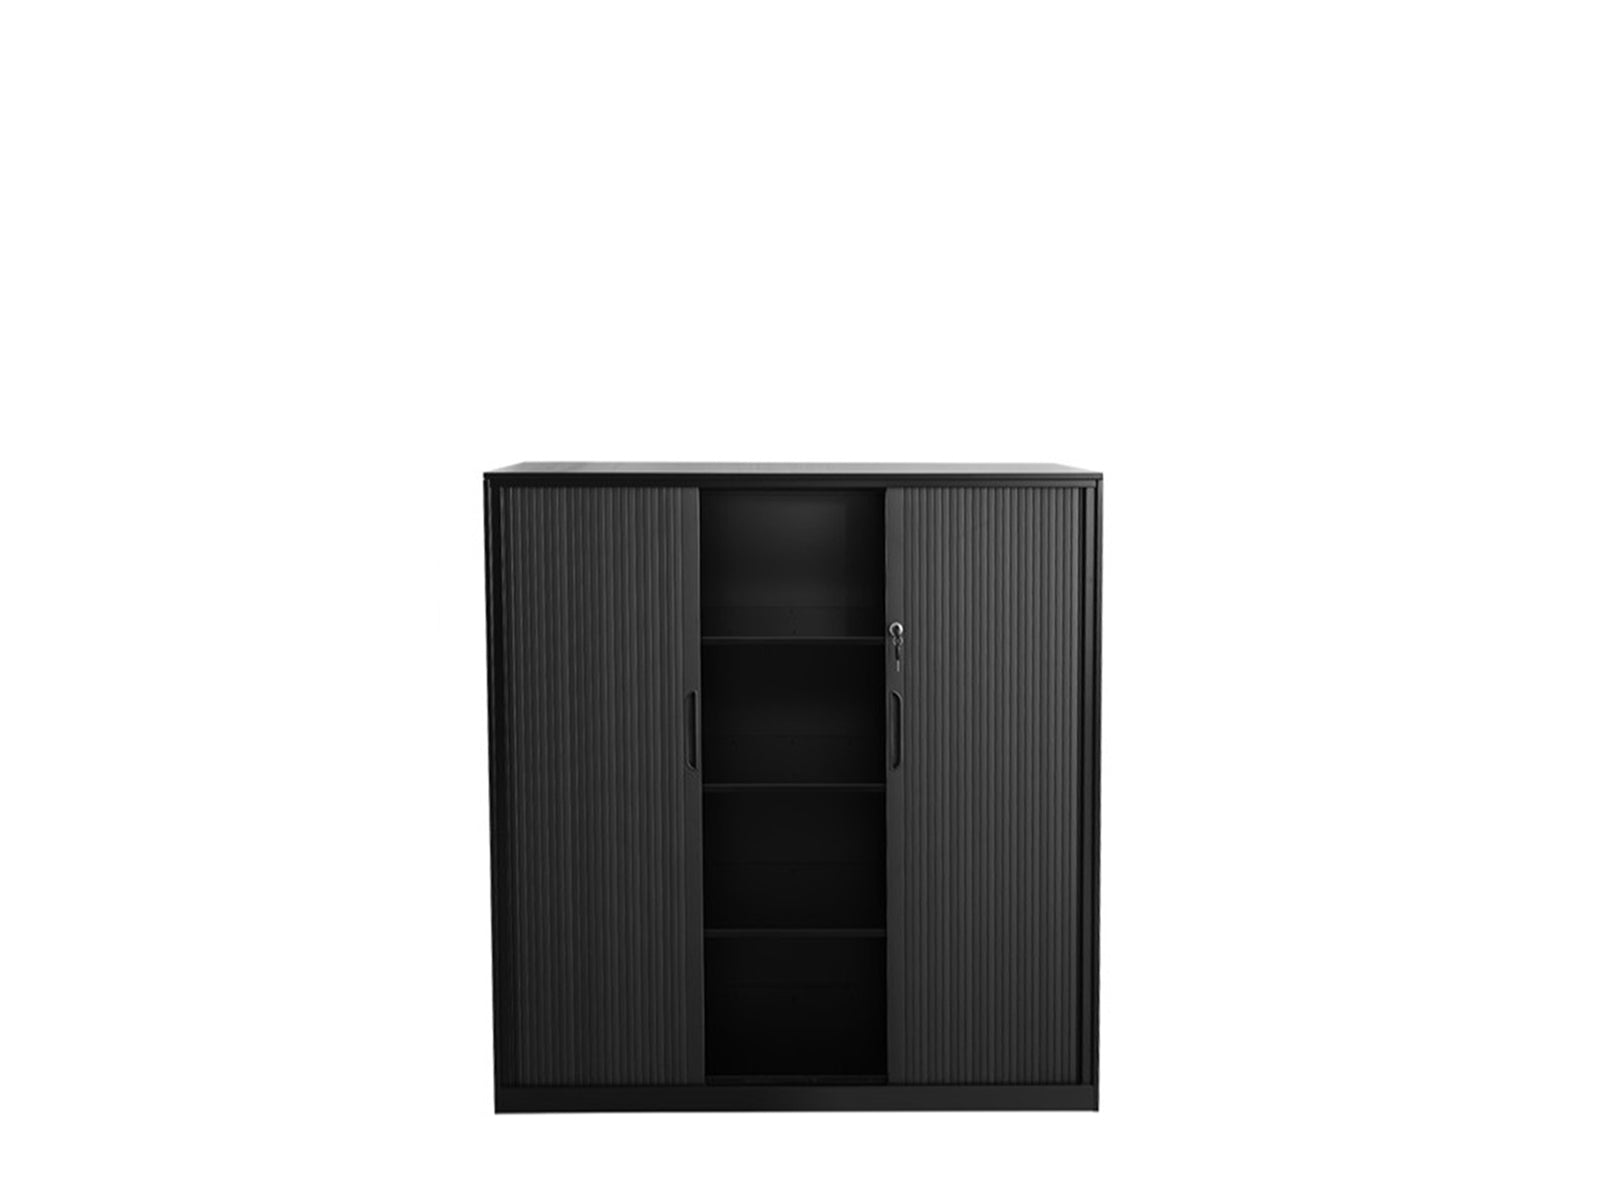 Proceed Tambour 1.2 x 1.2m Black - Workspace Furniture Home and Office Tambours and Planters